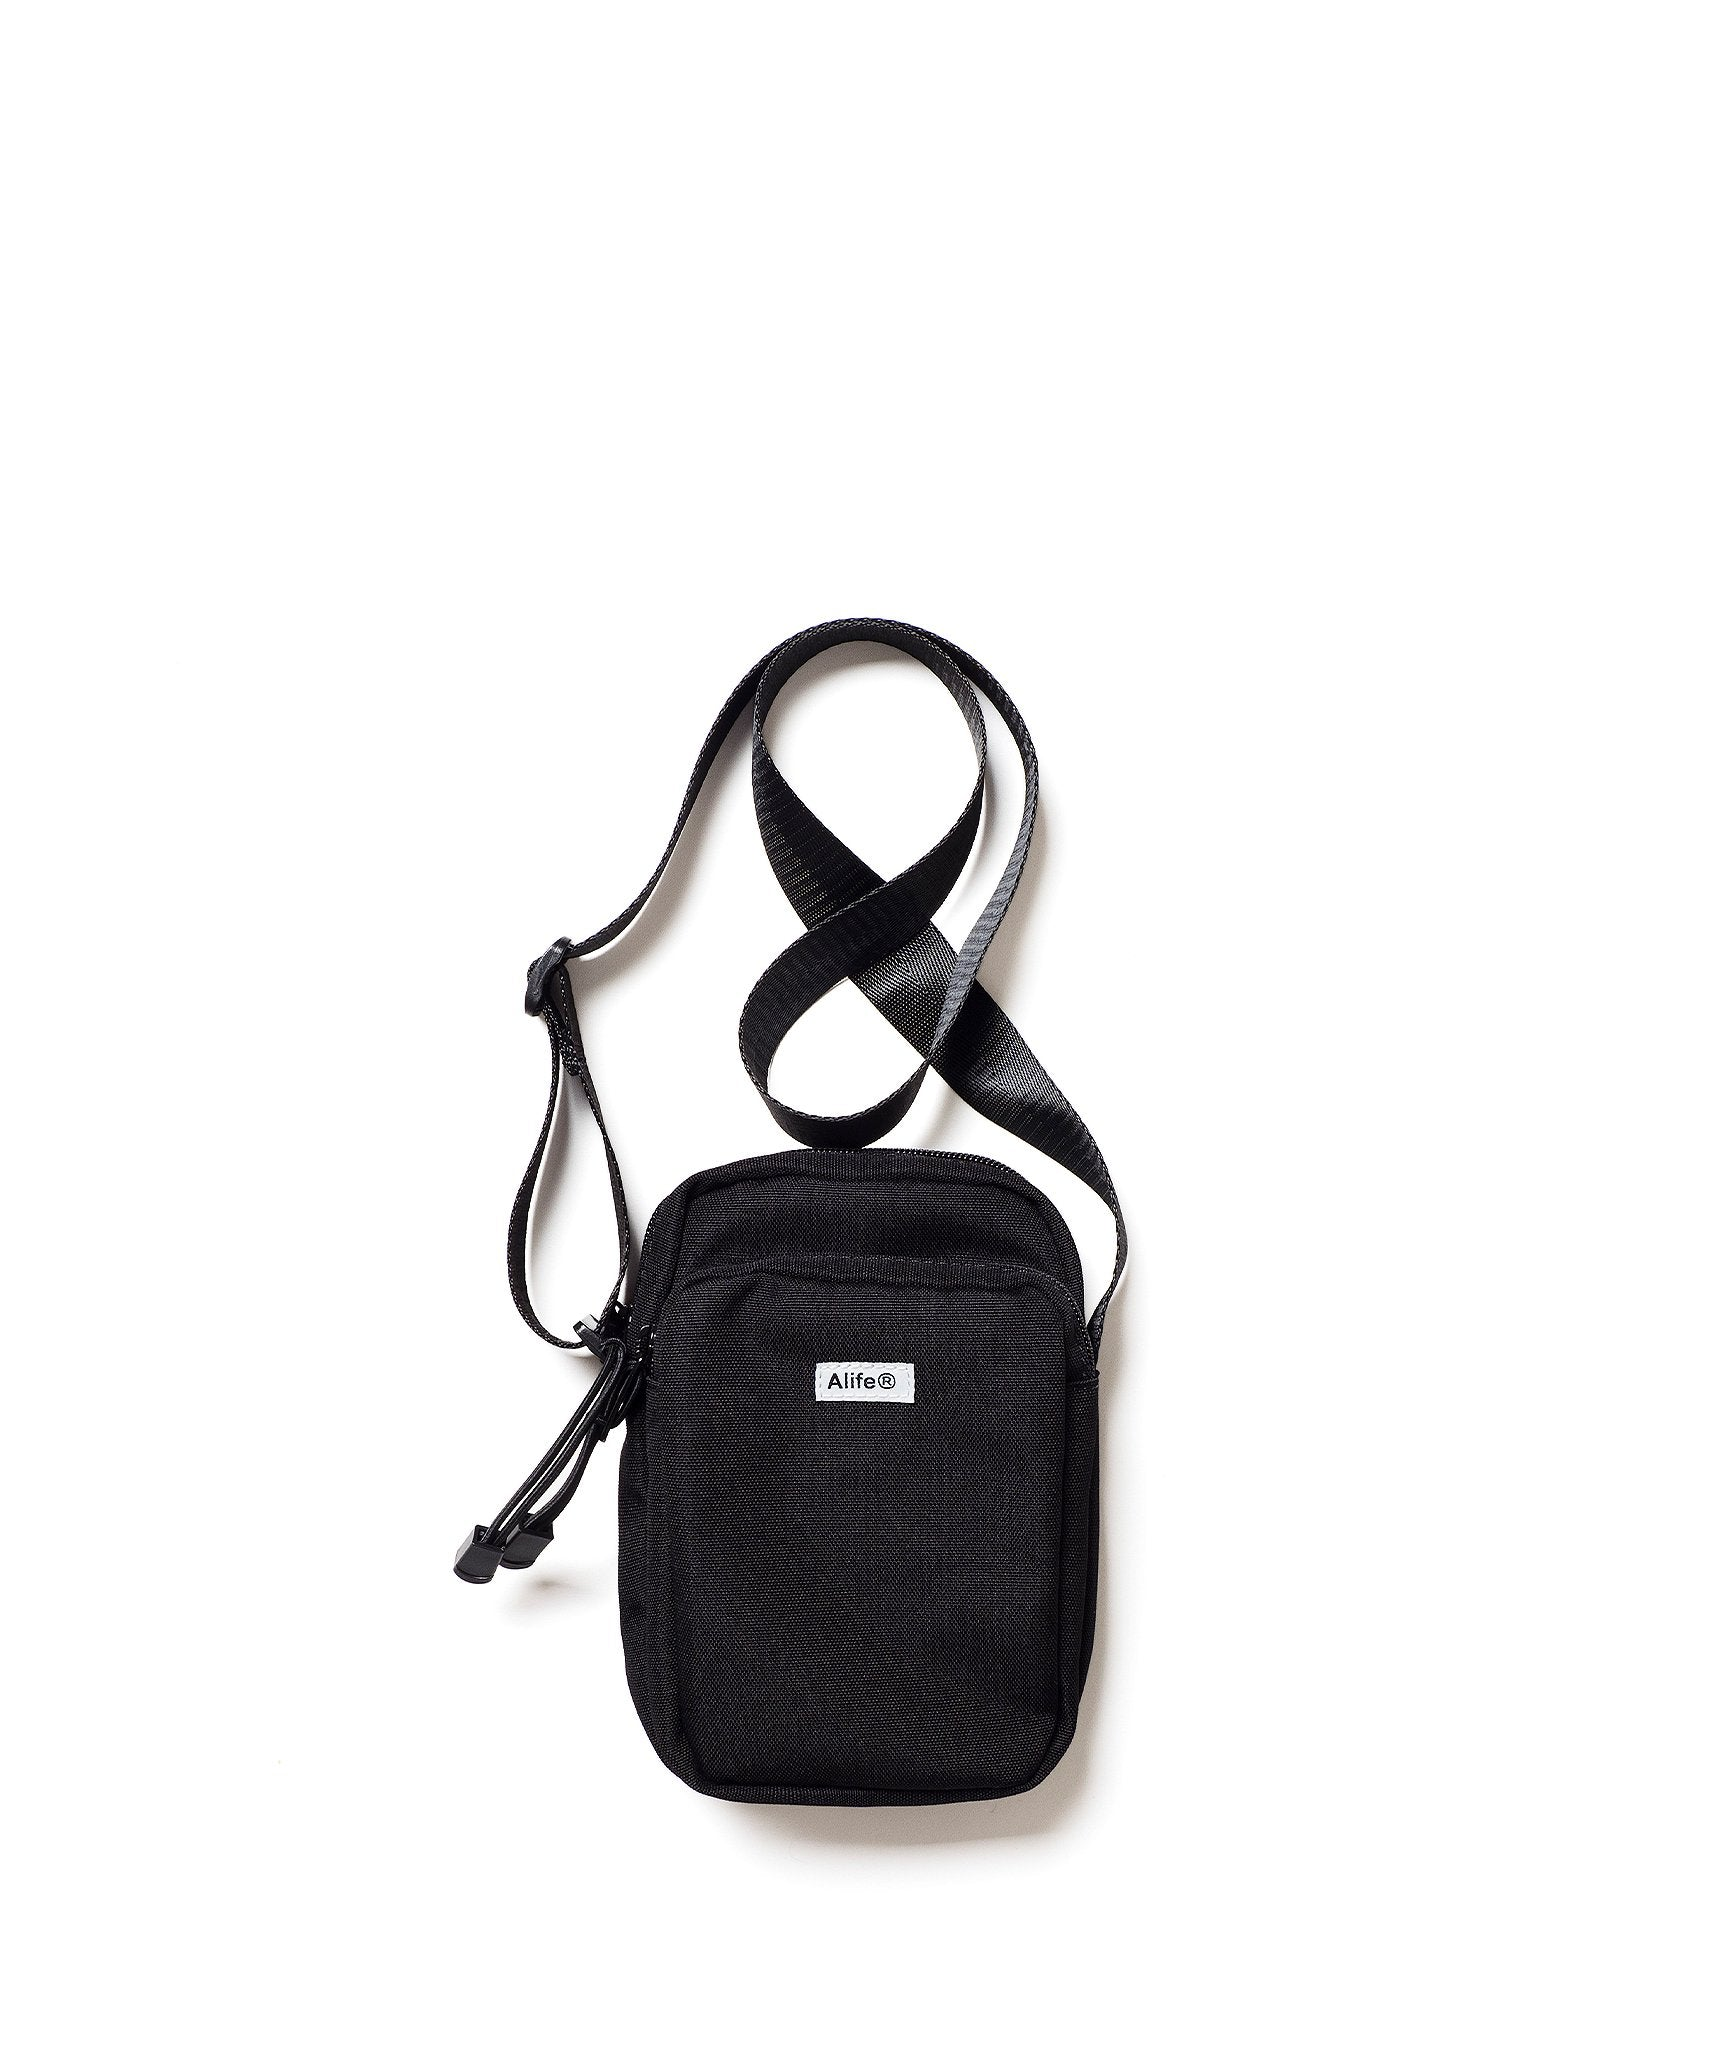 Alife Compact Messenger Bag in black nylon